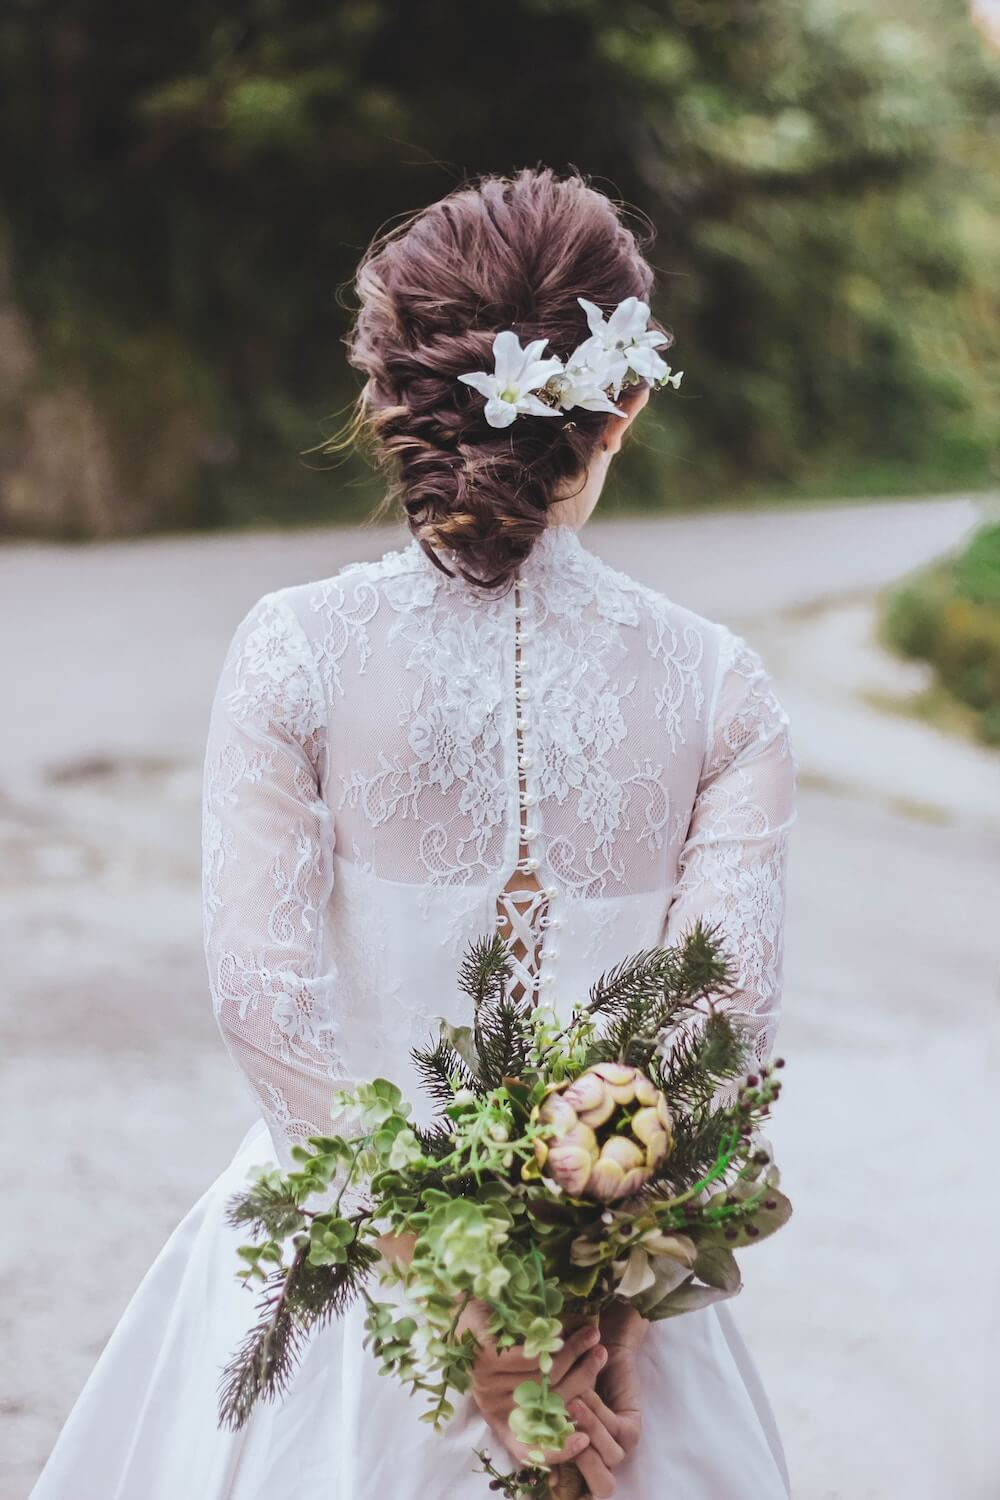 Woman holding wedding bouquet behind back